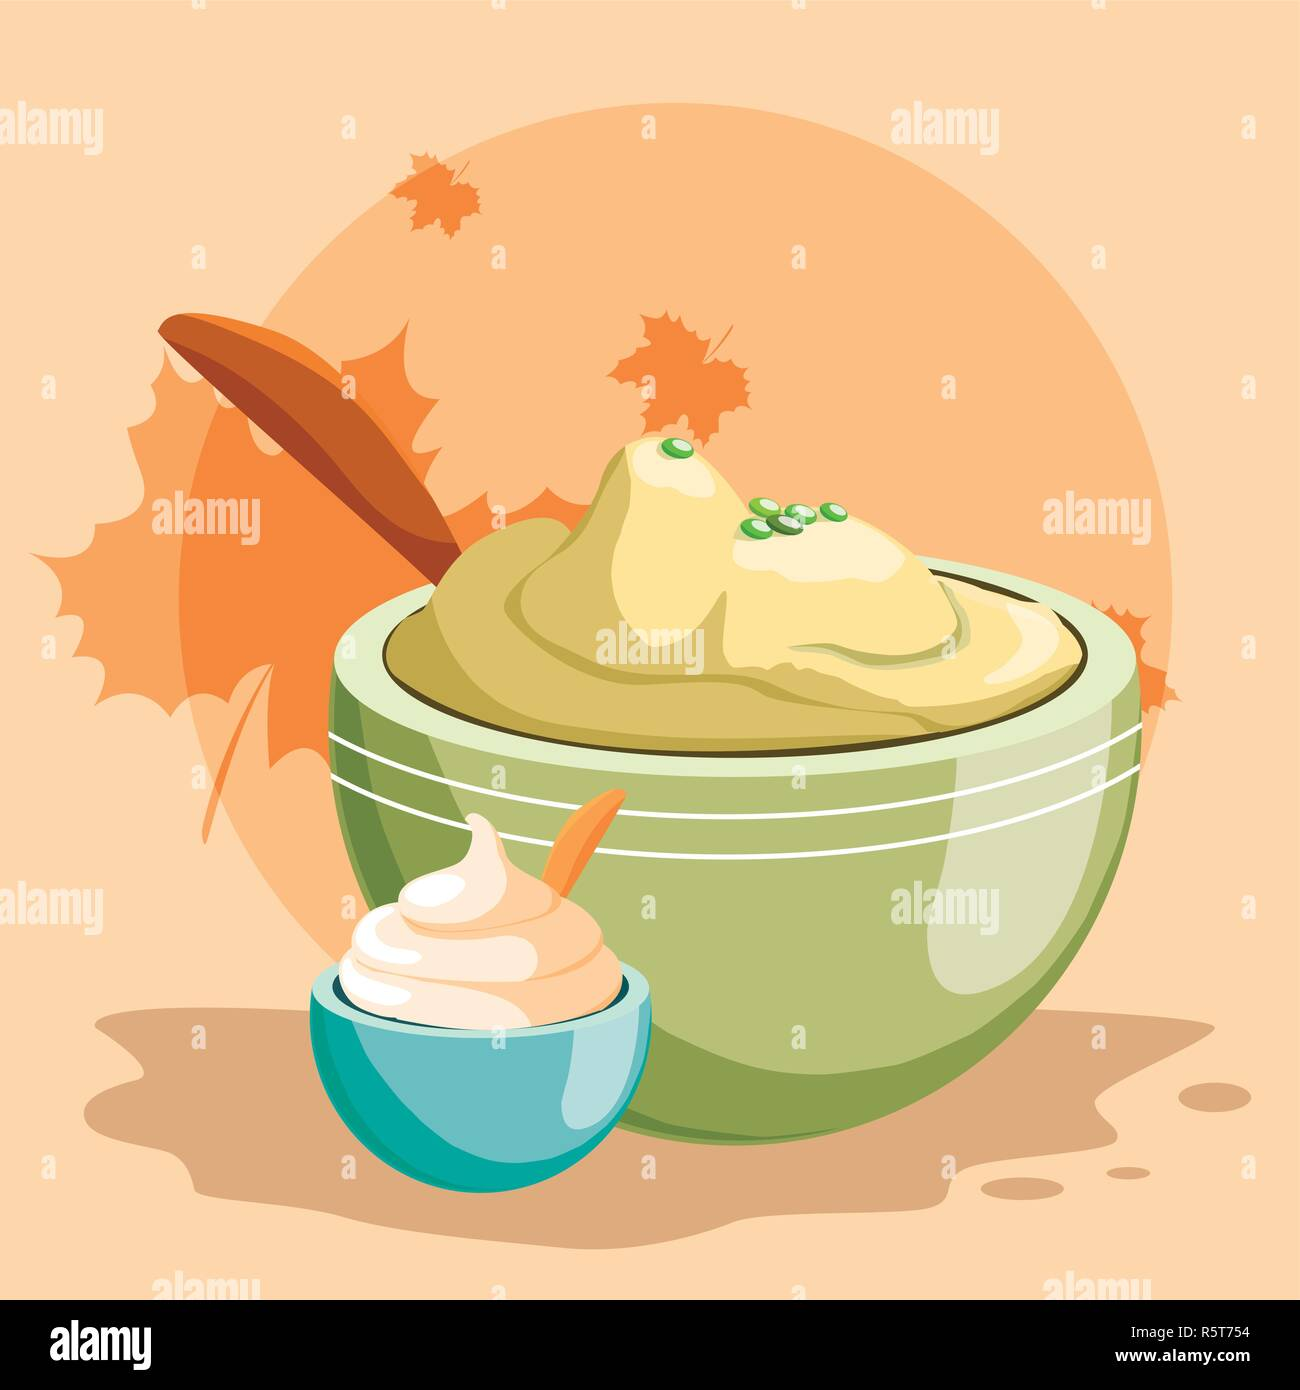 bowl with mashed potatoes over orange background, vector illustration - Stock Vector